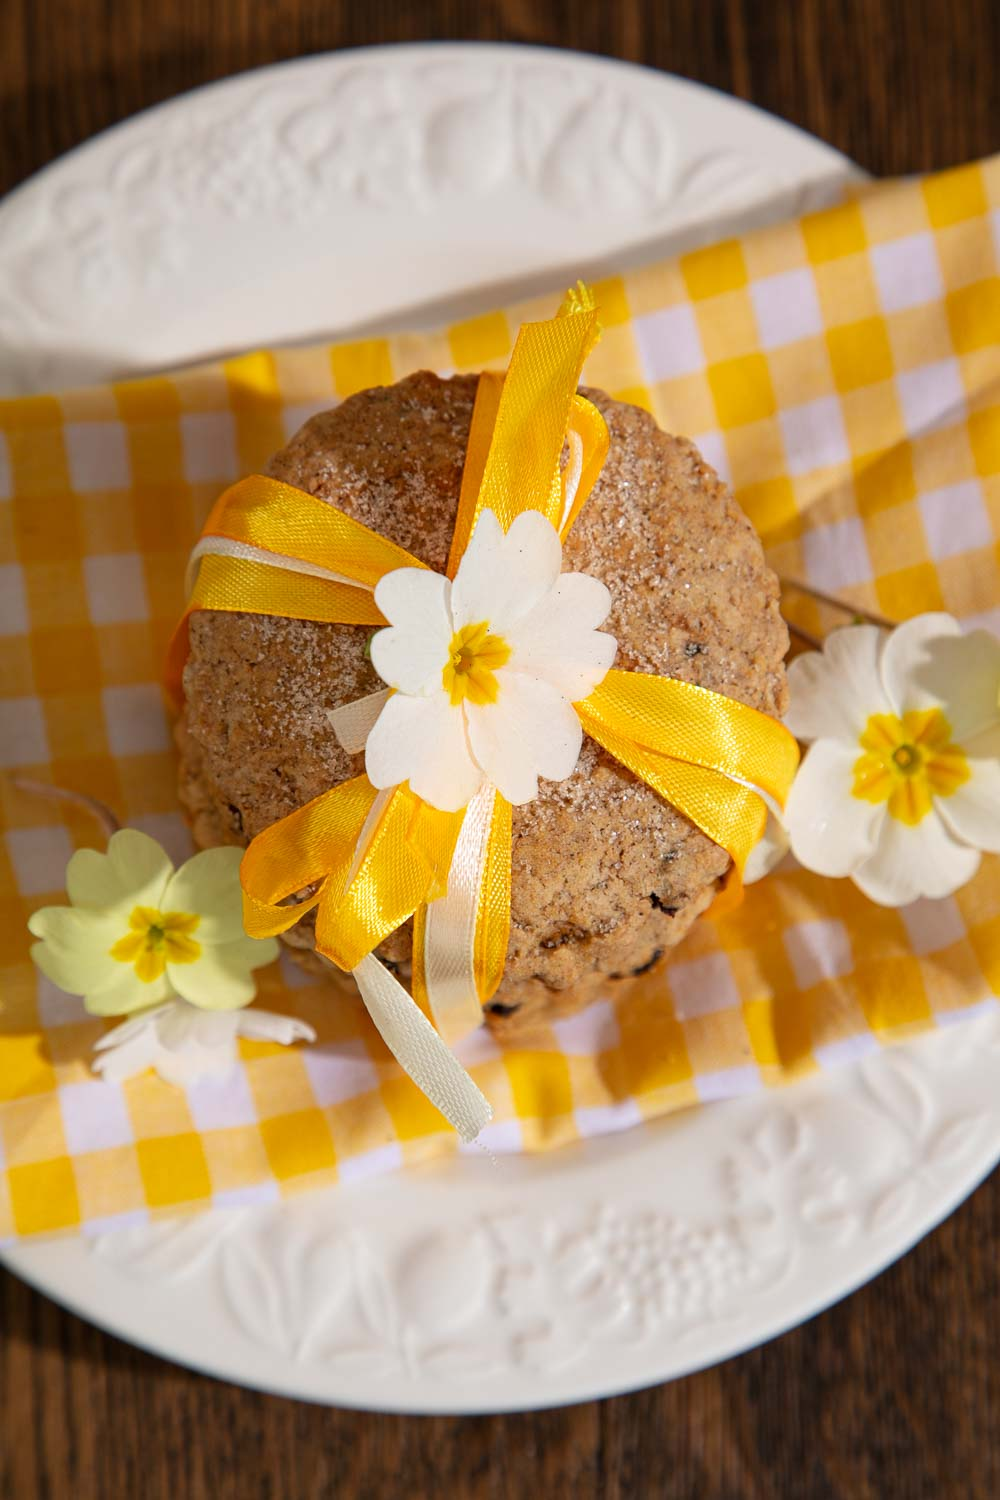 A stack of Vegan Easter Biscuits tied with yellow ribbons, decorated with fresh primrose flowers. Sitting on yellow gingham.